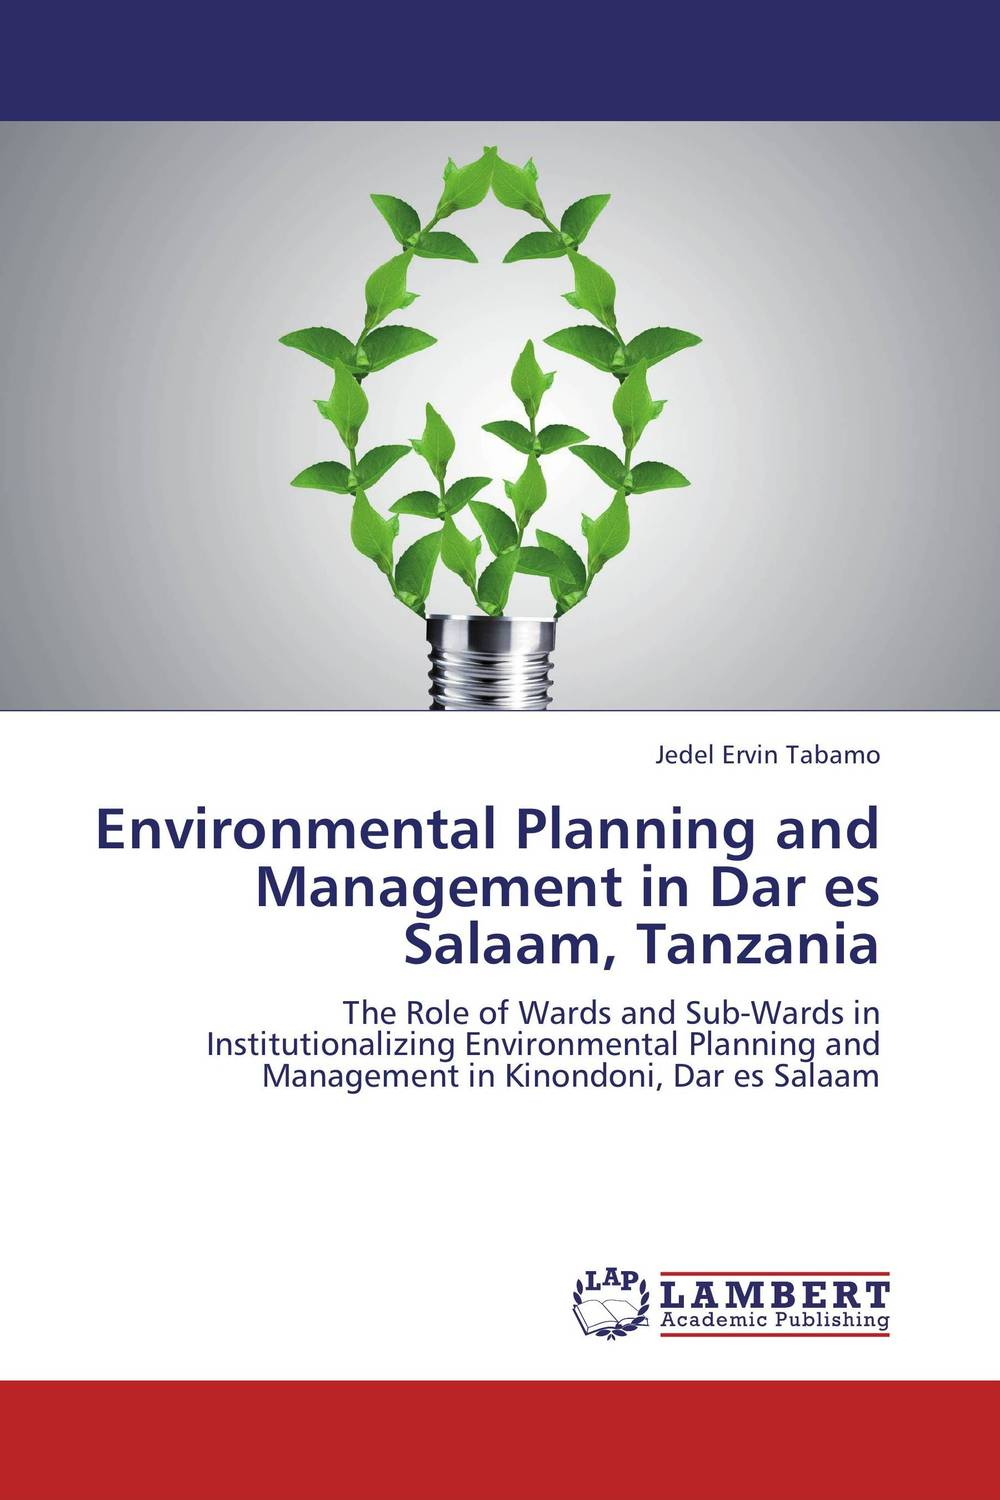 Environmental Planning and Management in Dar es Salaam, Tanzania optimal and efficient motion planning of redundant robot manipulators